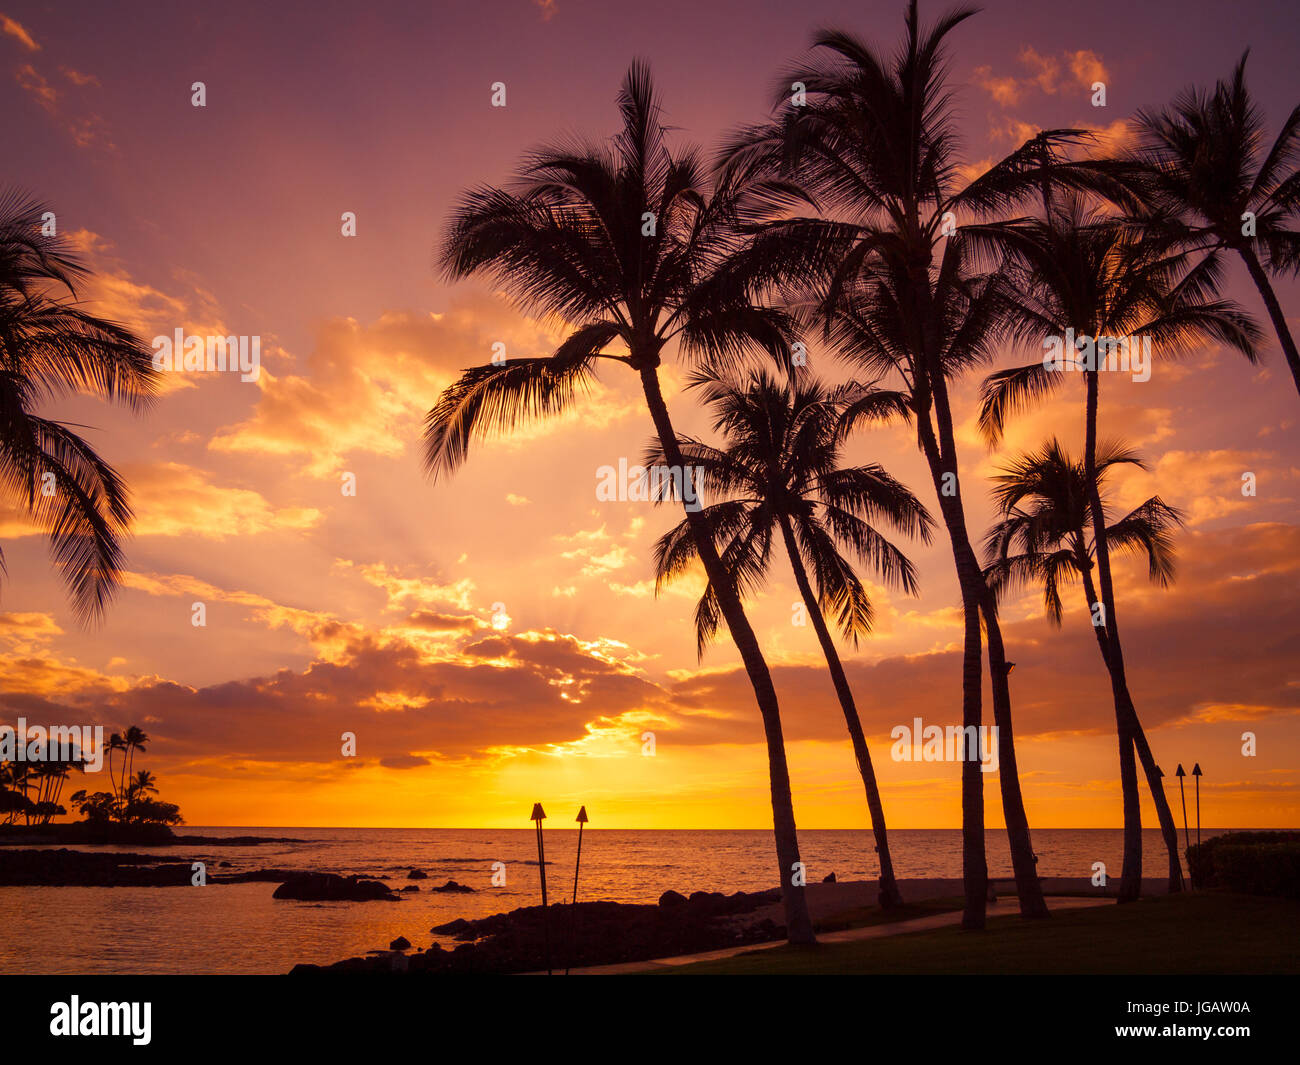 A beautiful sunset and silhouetted coconut palm trees as seen from Pauoa Bay at the Fairmont Orchid, Kohala Coast, - Stock Image